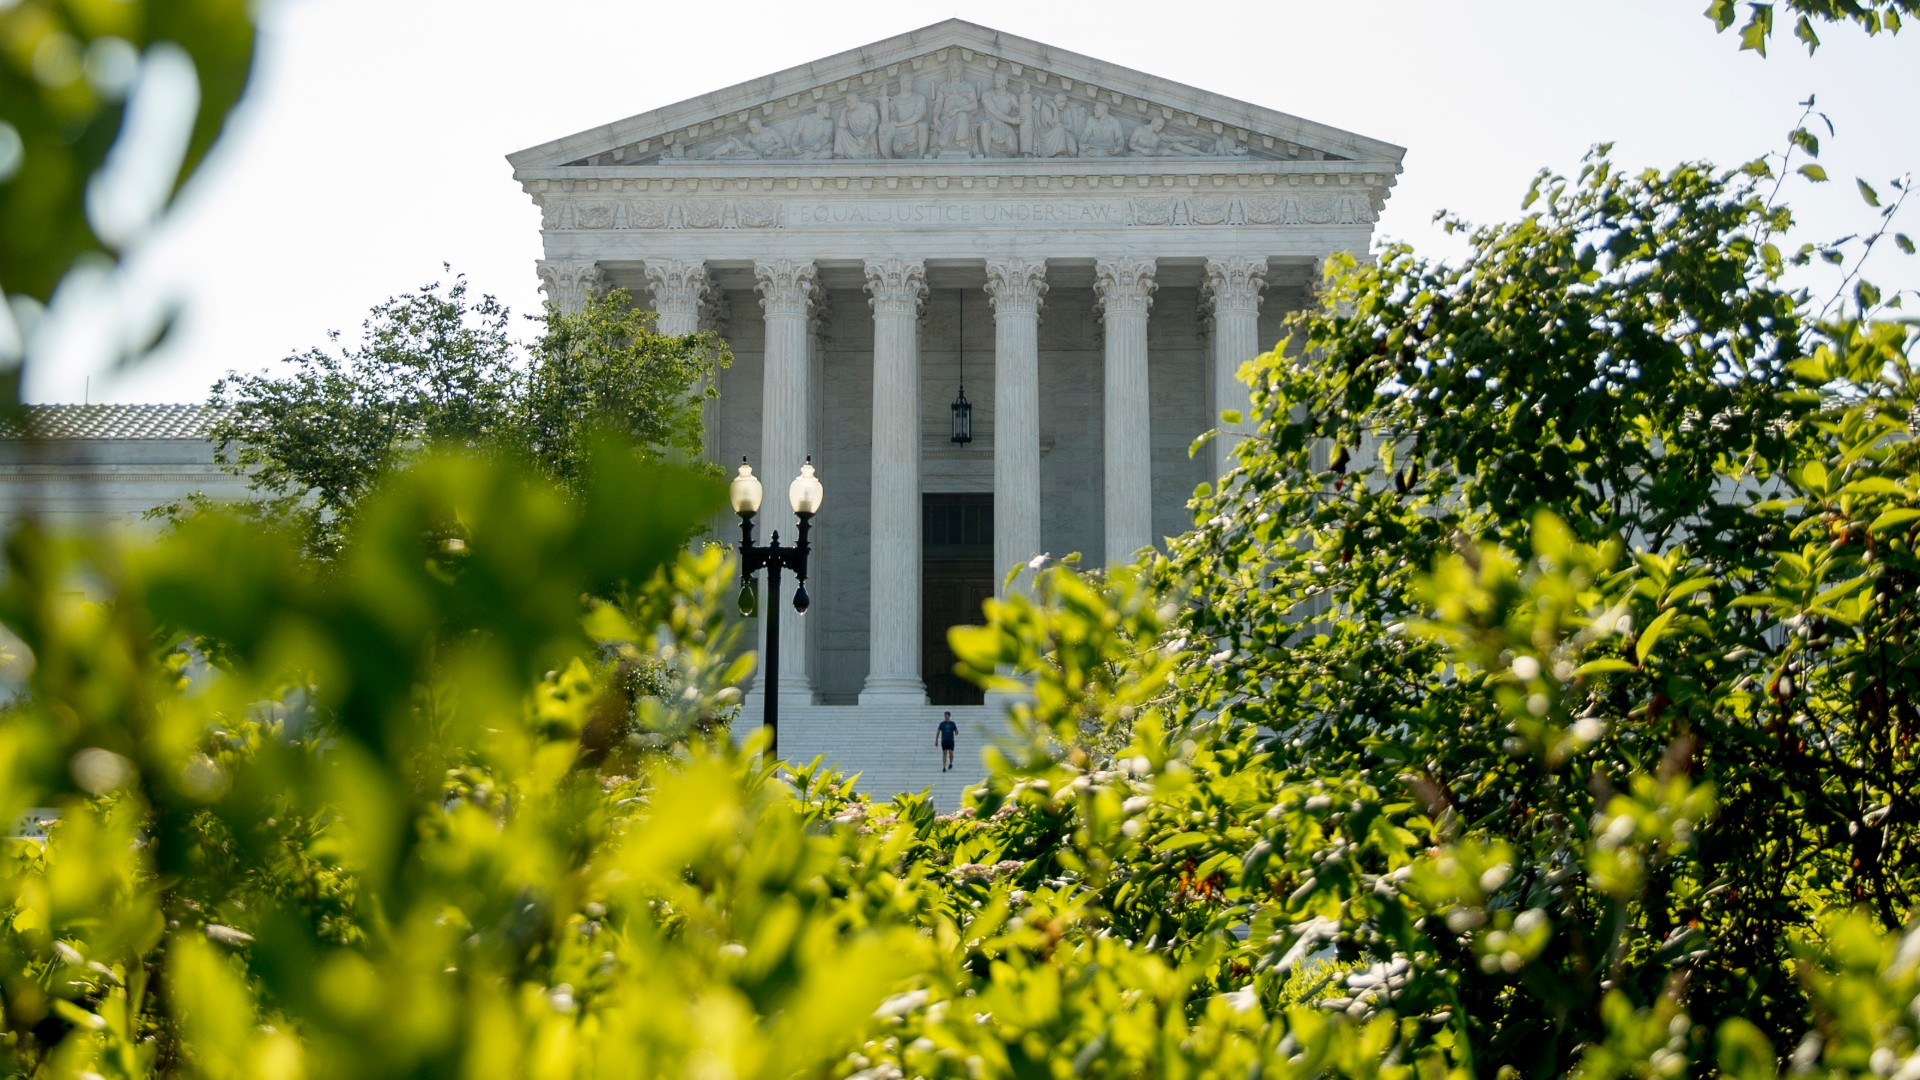 The Supreme Court, Wednesday, July 8, 2020, in Washington. (AP Photo/Andrew Harnik)